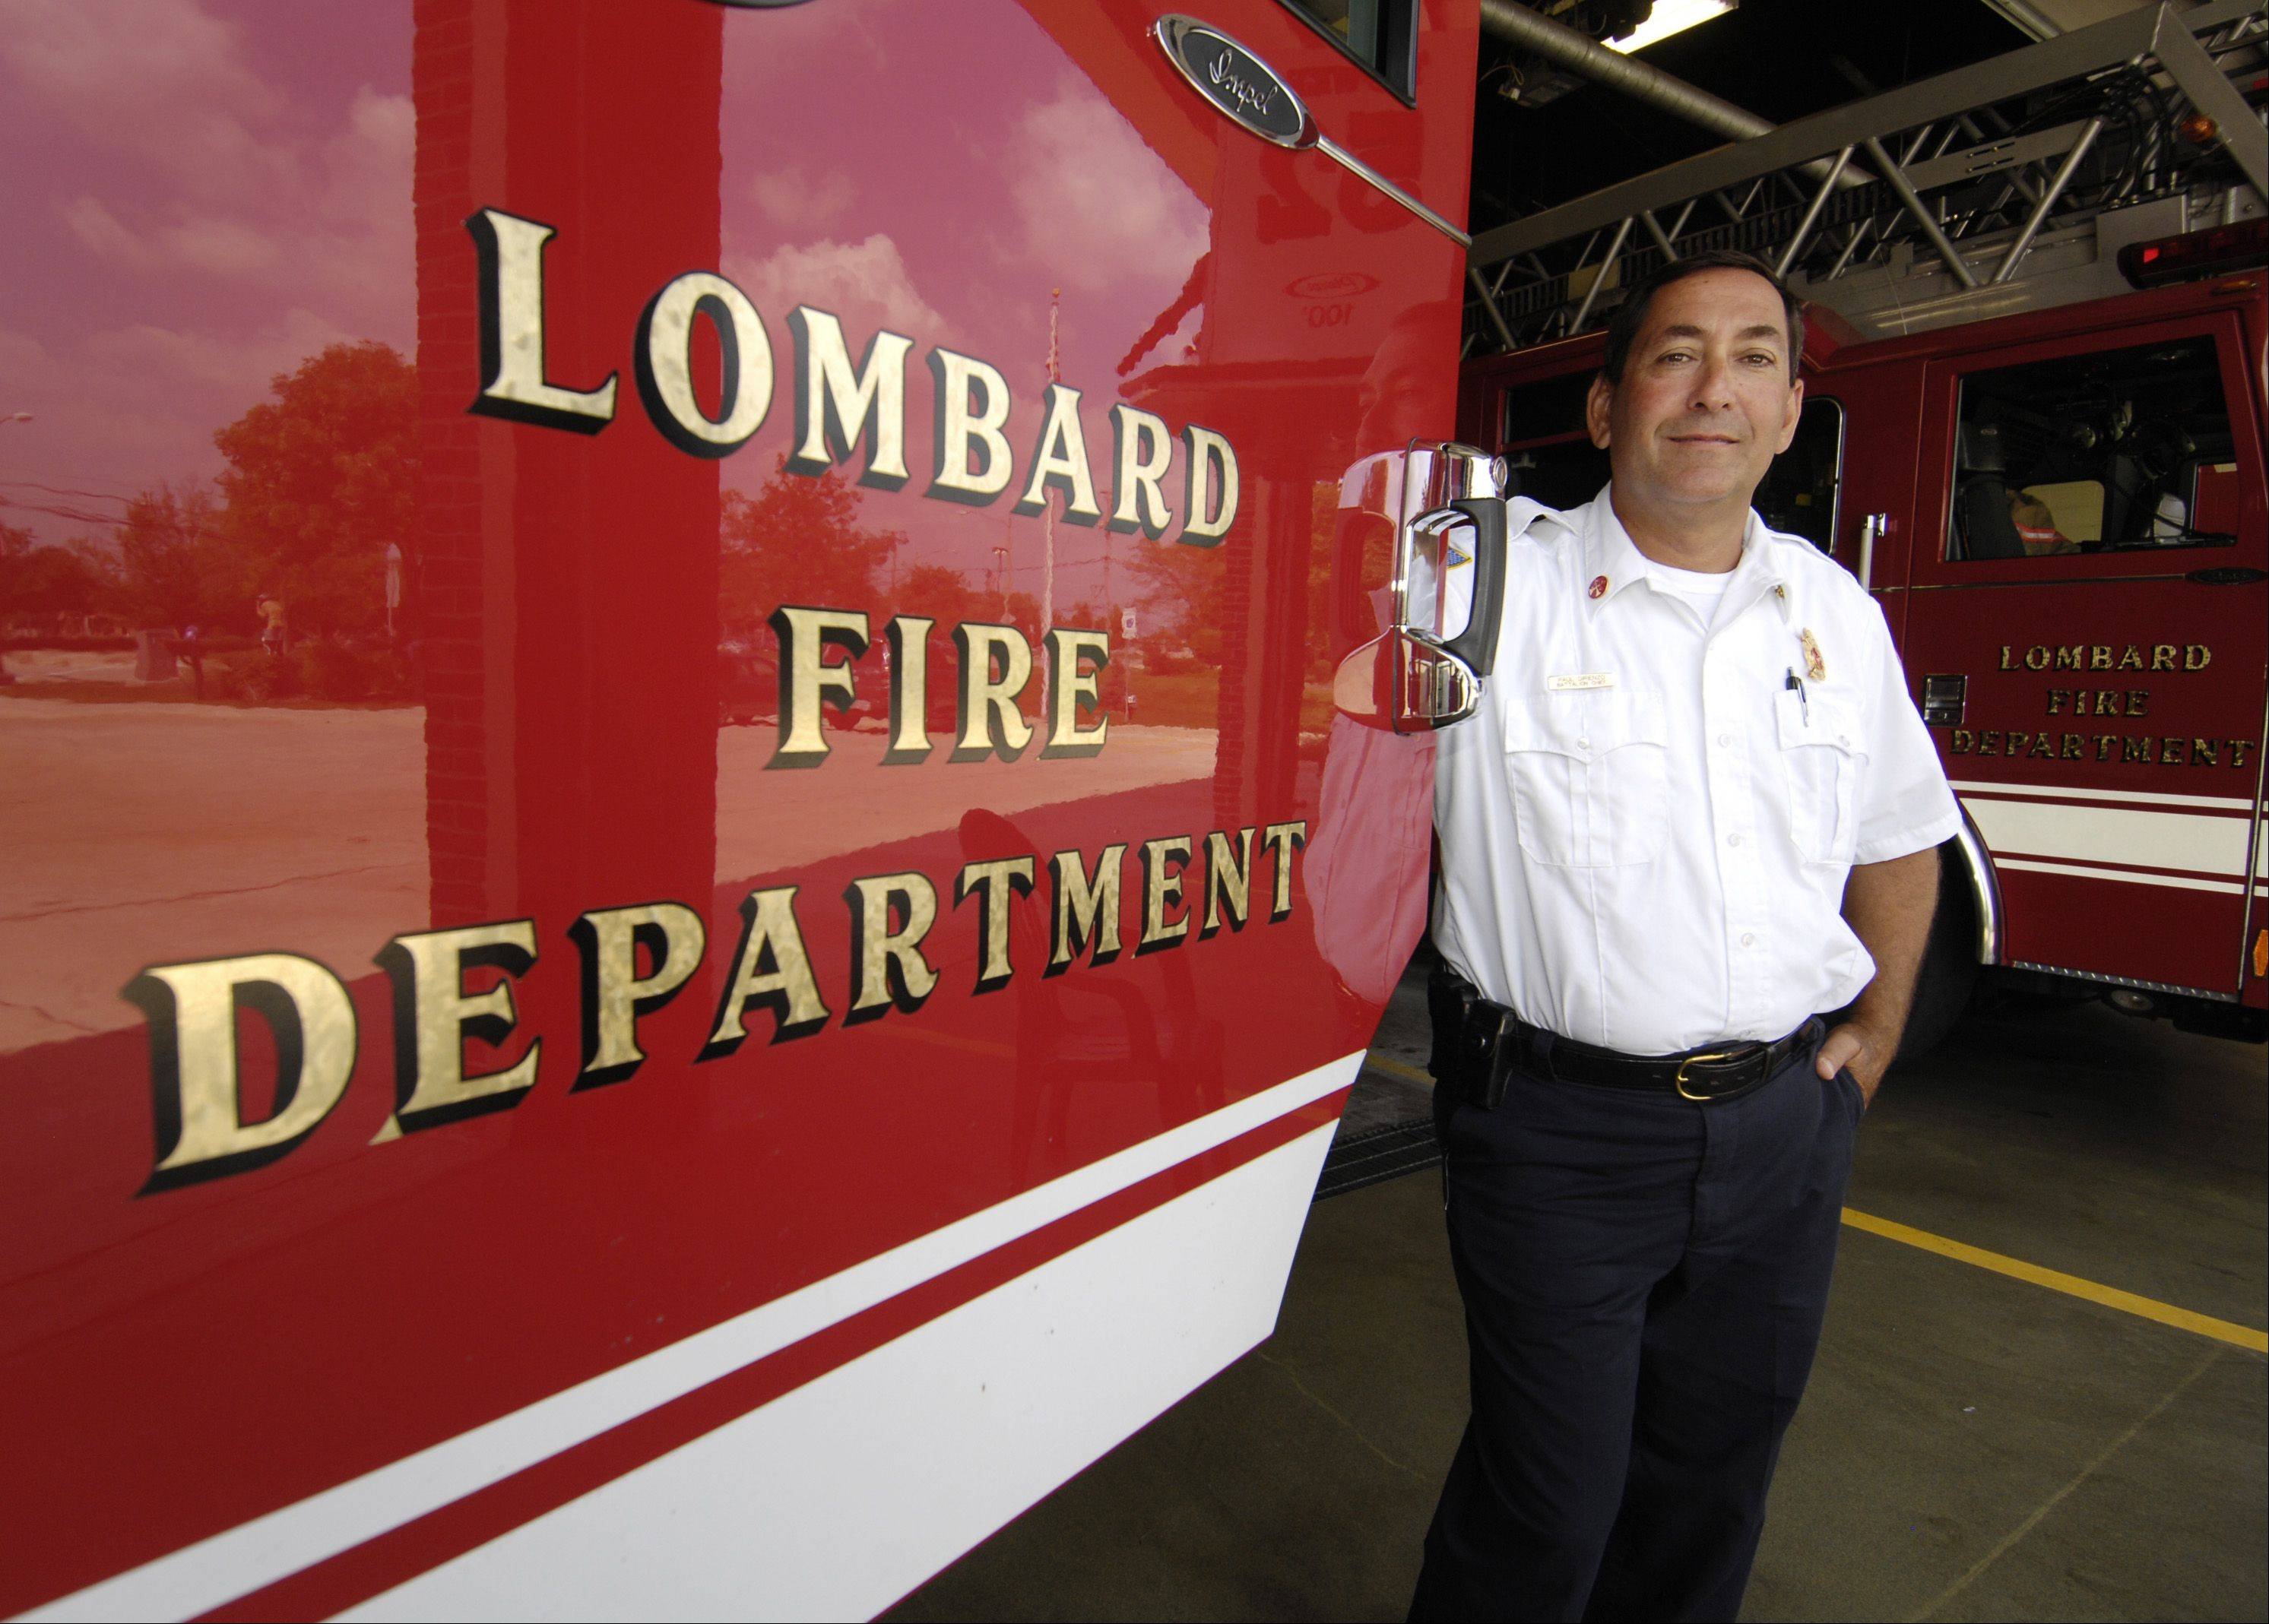 Paul DiRienzo was sworn in as Lombard fire chief Sept. 6. One of his first goals is to increase the department's capacity for responding to medical emergencies.